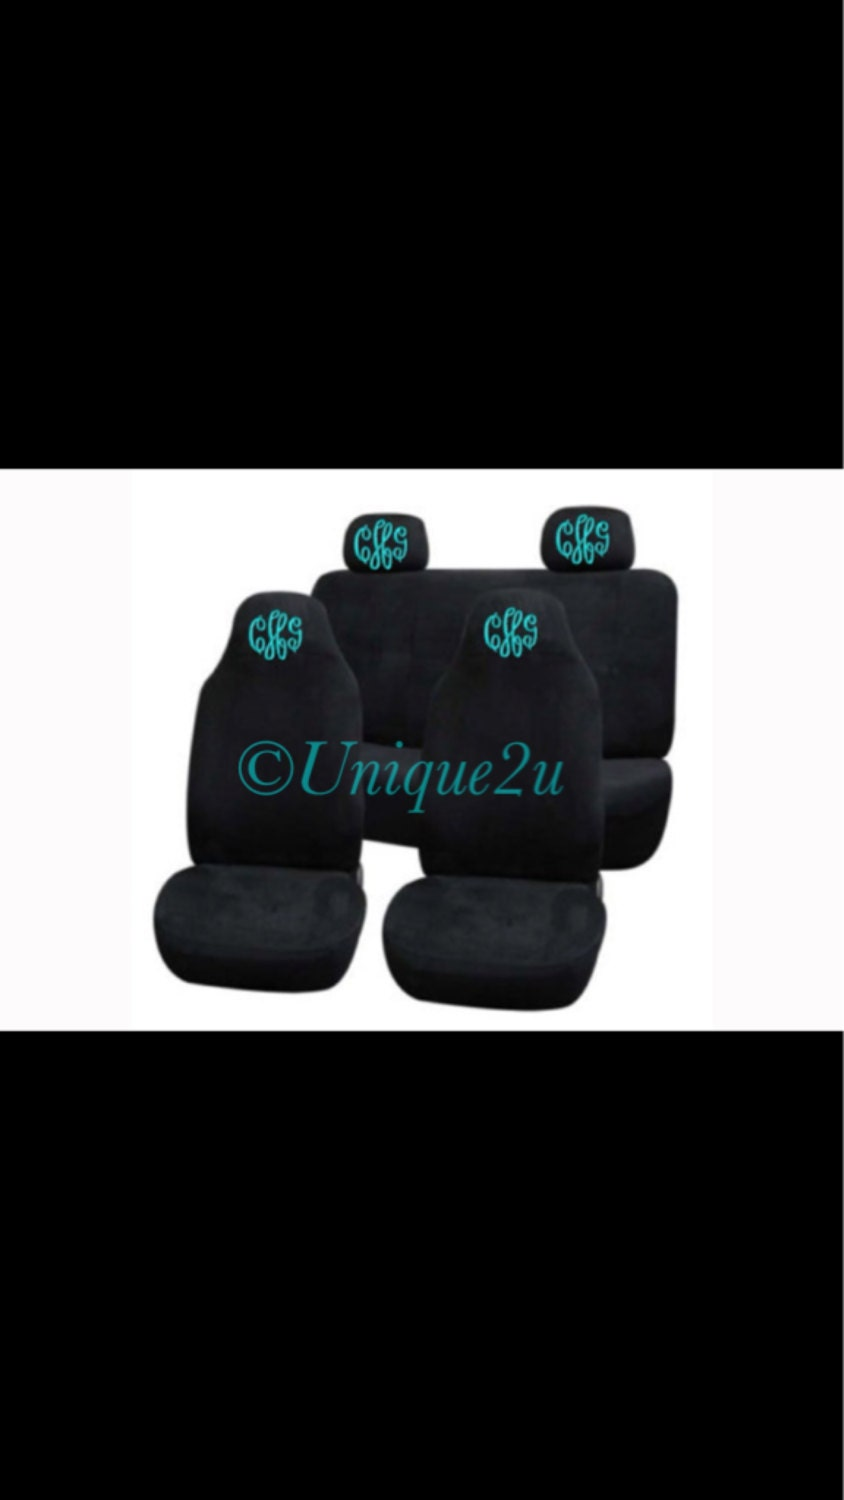 Monogram Seat Covers For Cars | Baby Gear & Equipment